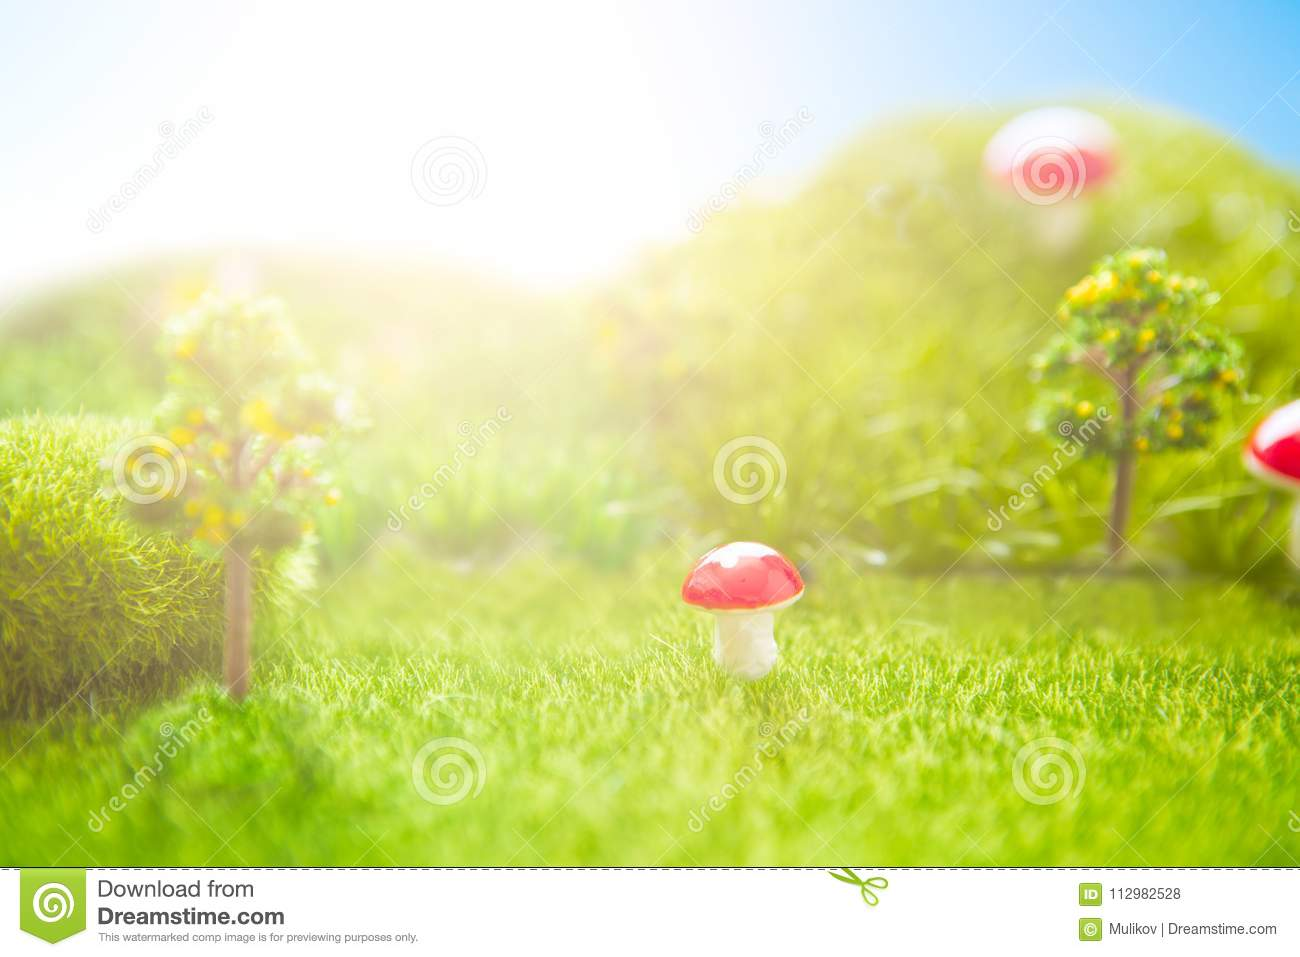 Toy Landscape. Sunset on the plastic green field with plastic grass, mushrooms and trees. Fake grass. Macro